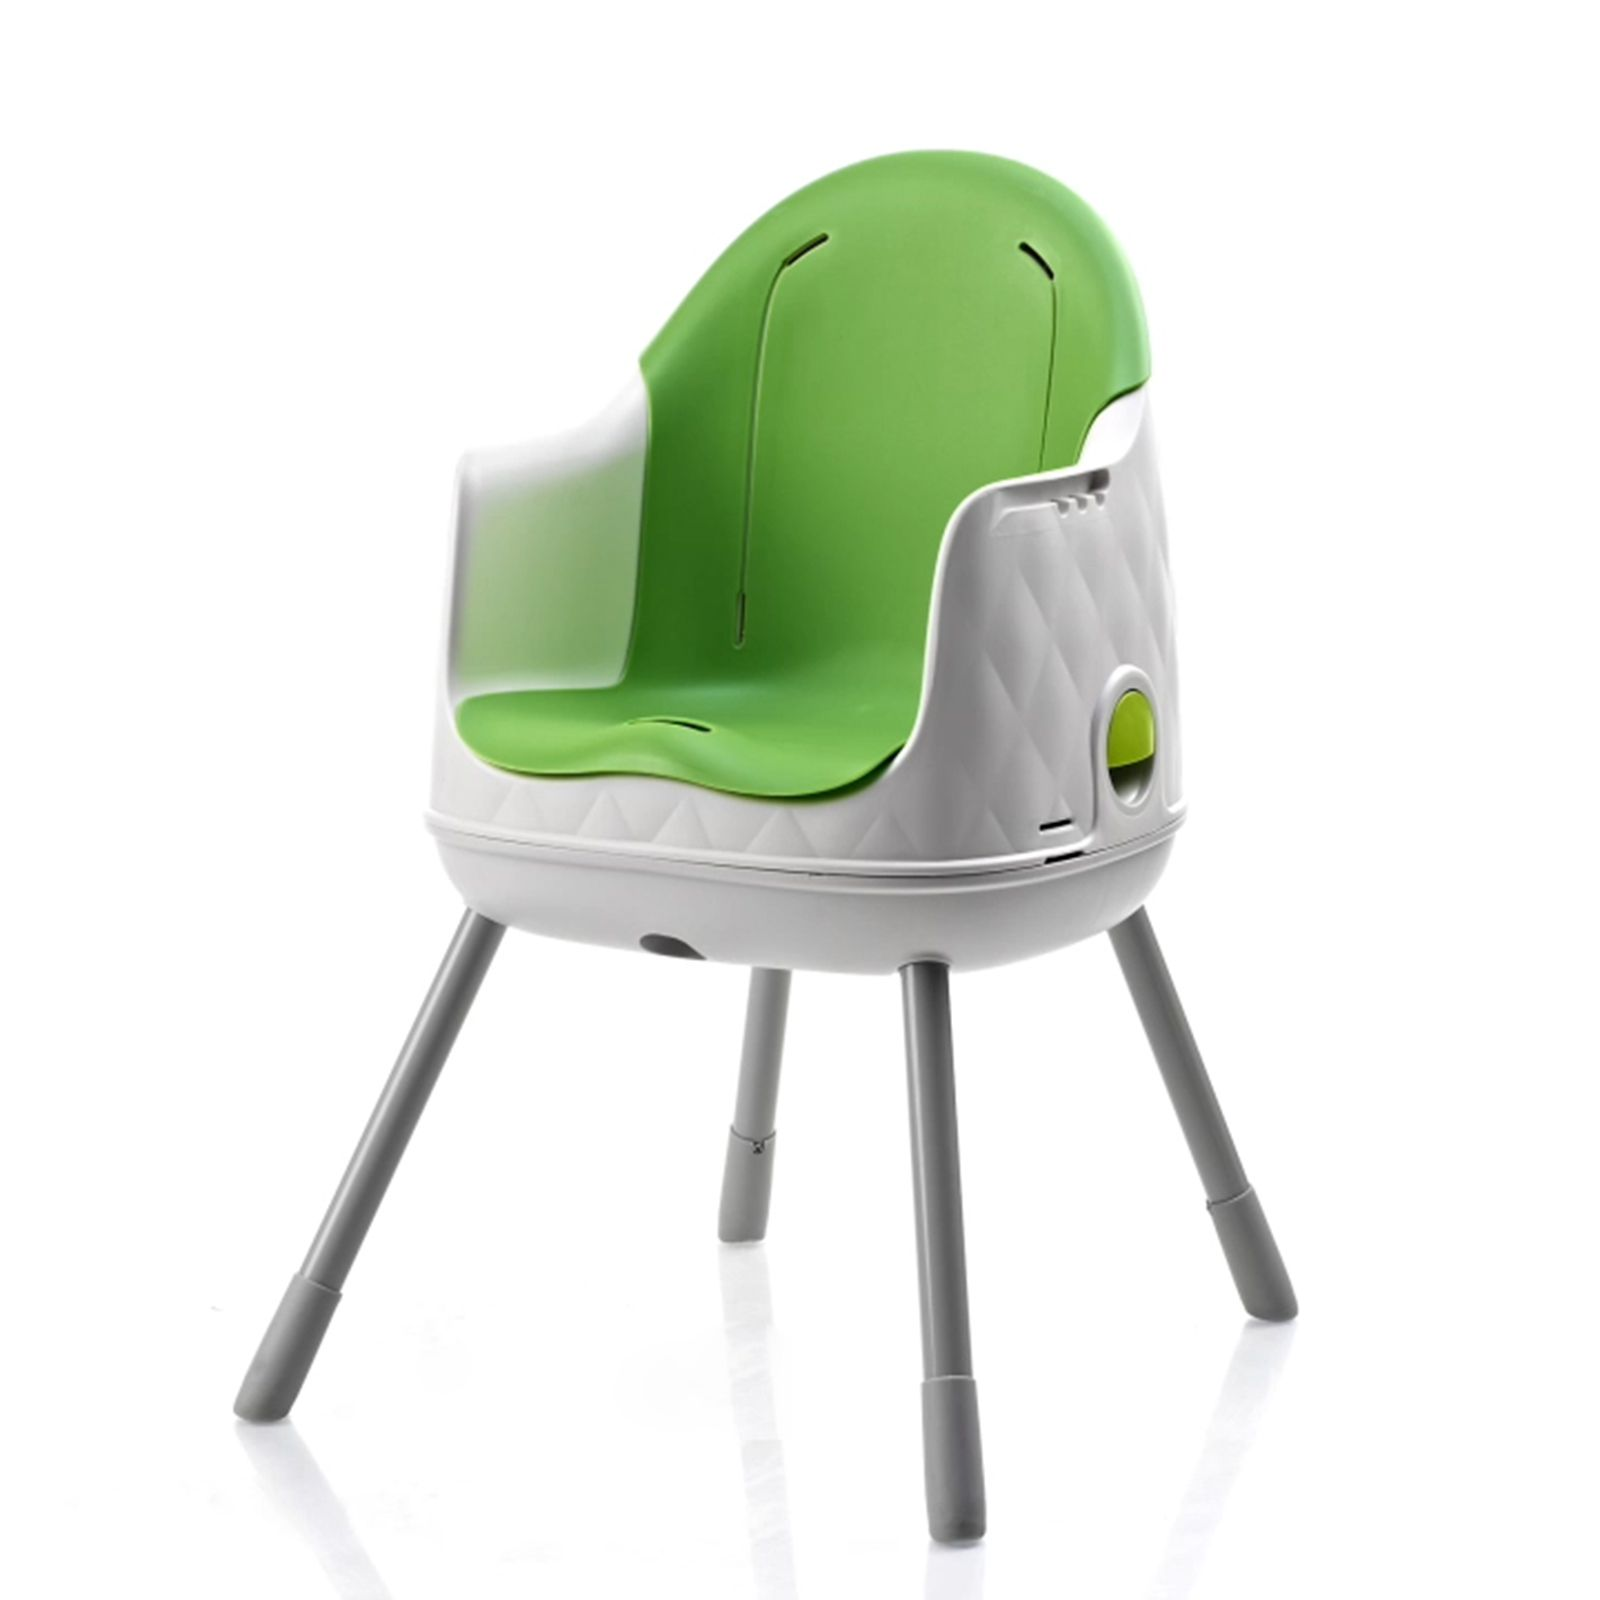 CADEIRA REFEICAO JELLY GREEN - SAFETY 1ST